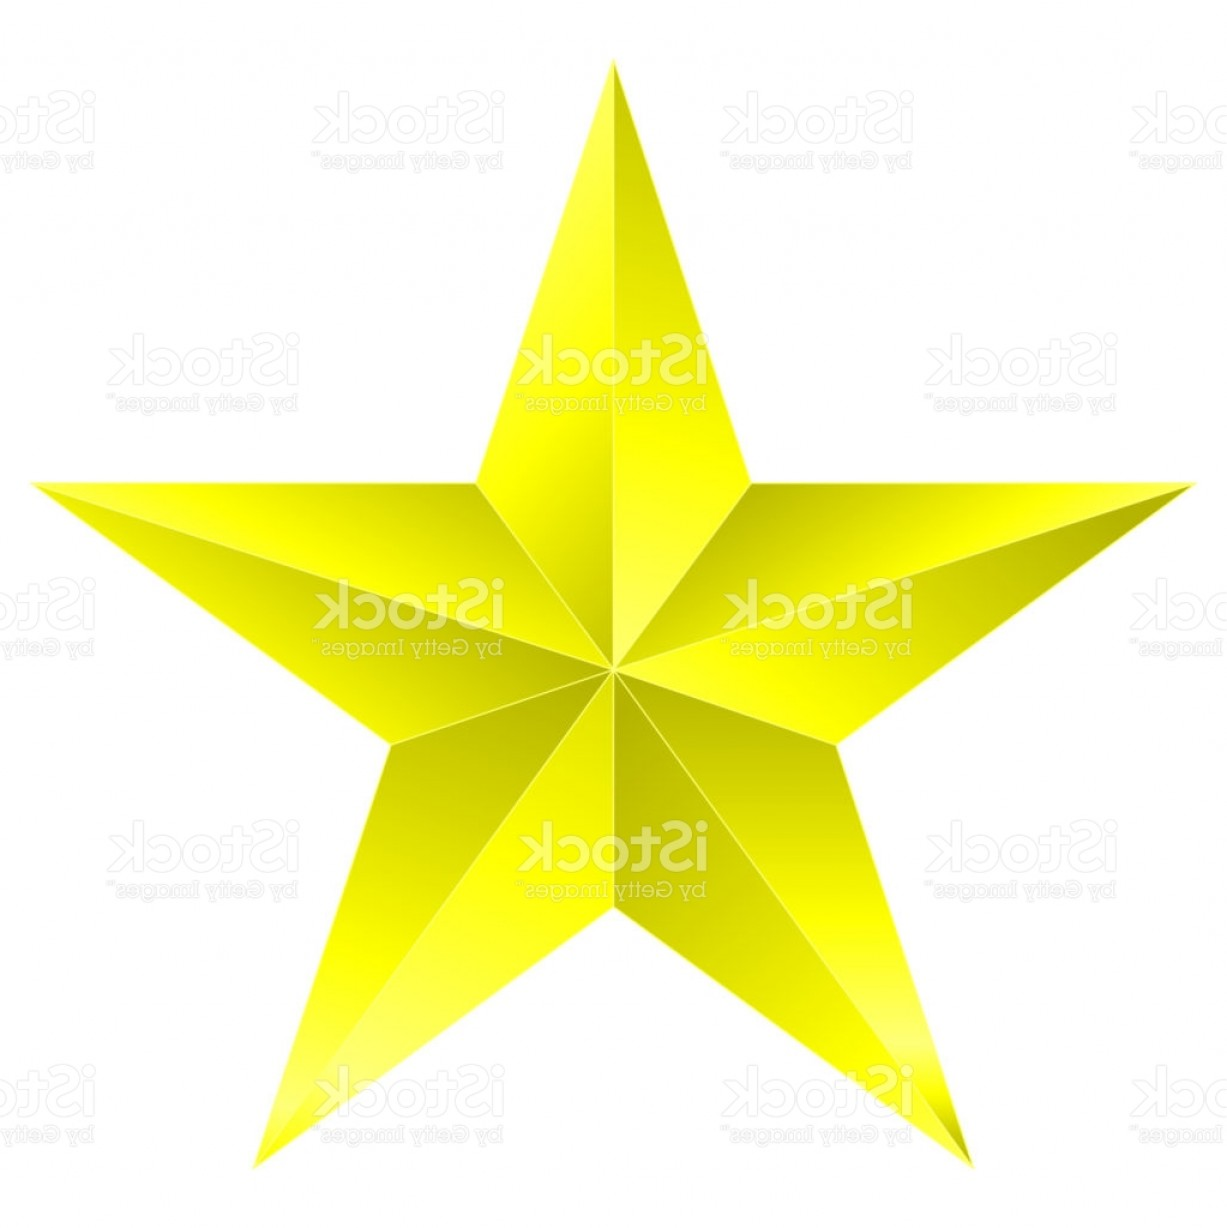 5 Point Star Vector Art: Christmas Star Yellow Point Star Isolated On White Gm